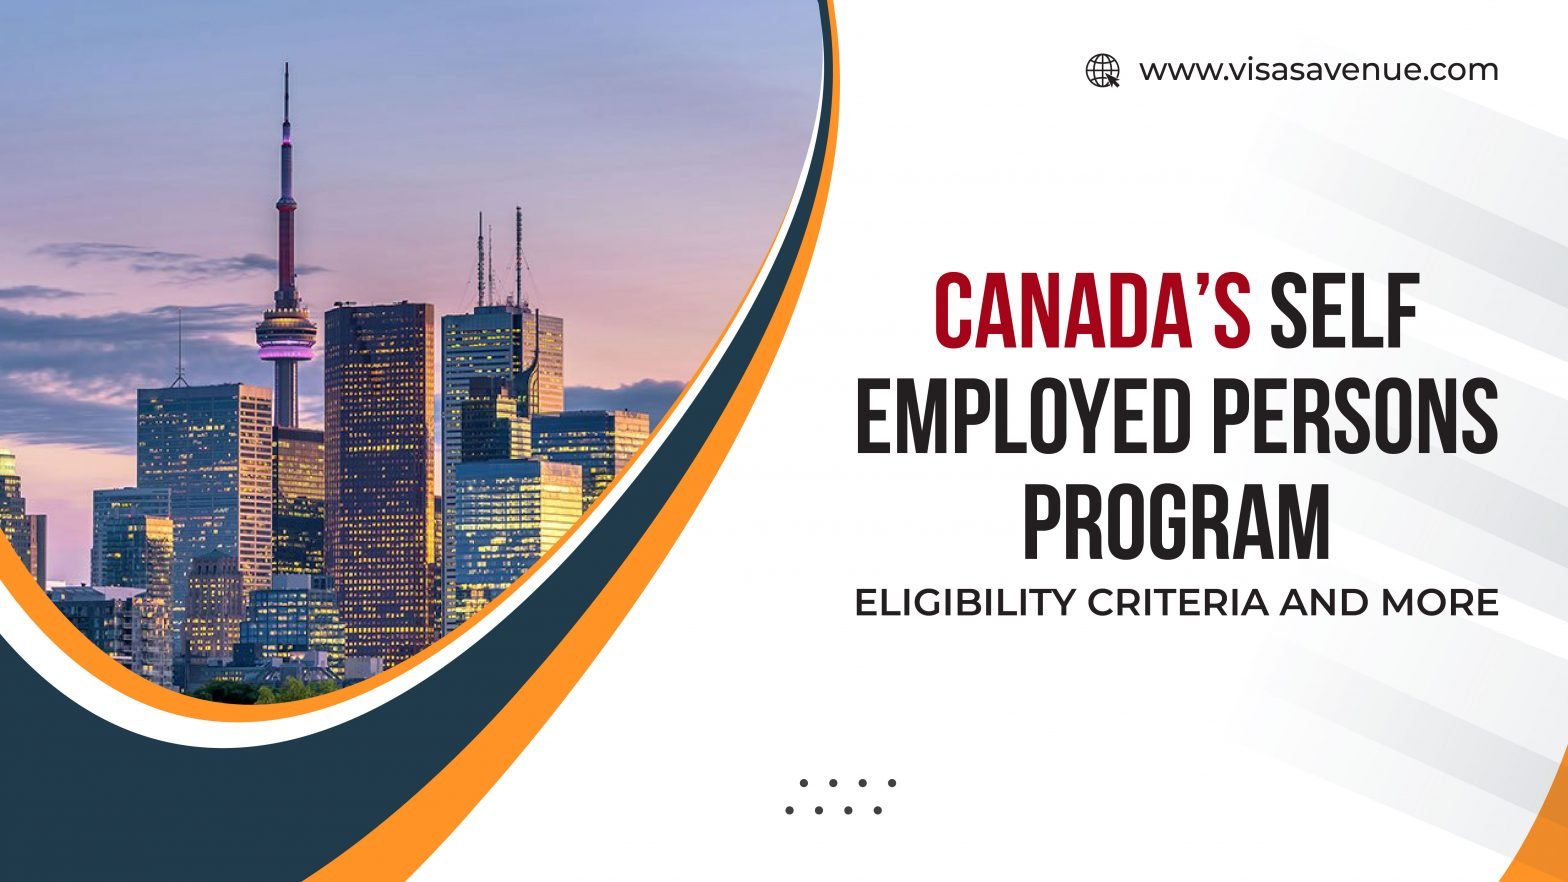 Canada's Self Employed Persons Program